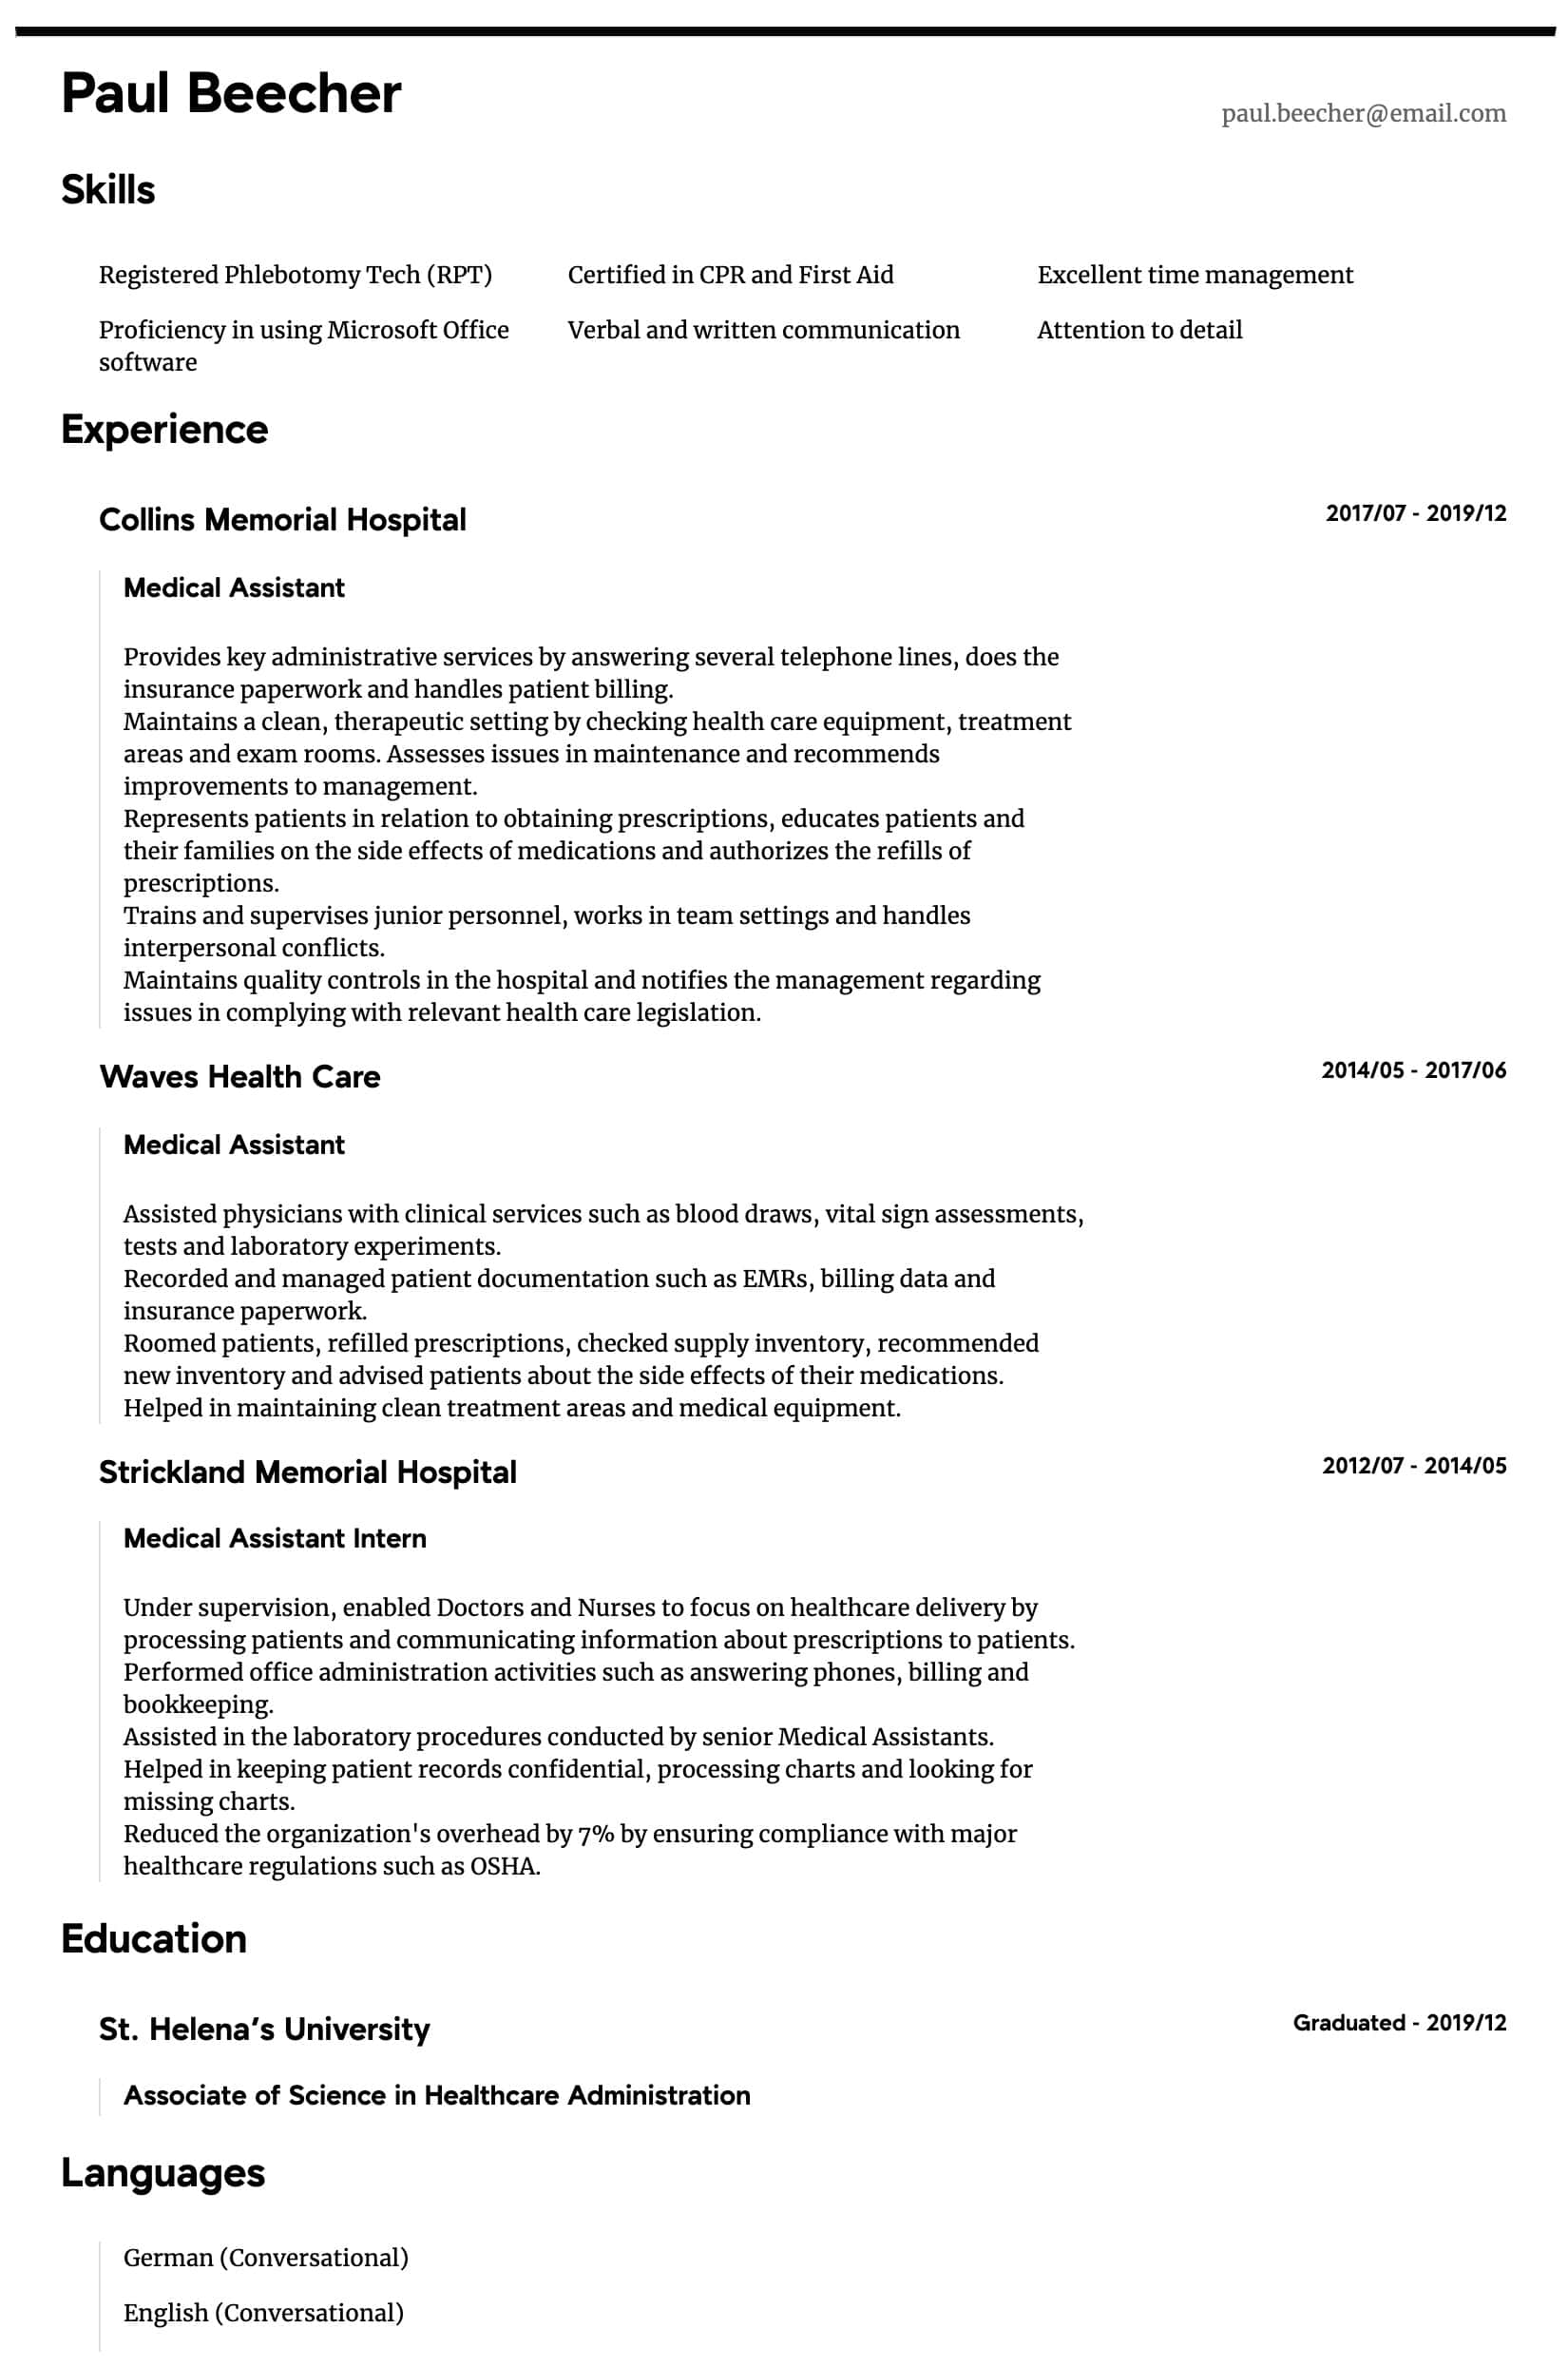 medical assistant resume samples all experience levels job description intermediate Resume Medical Assistant Job Description Resume